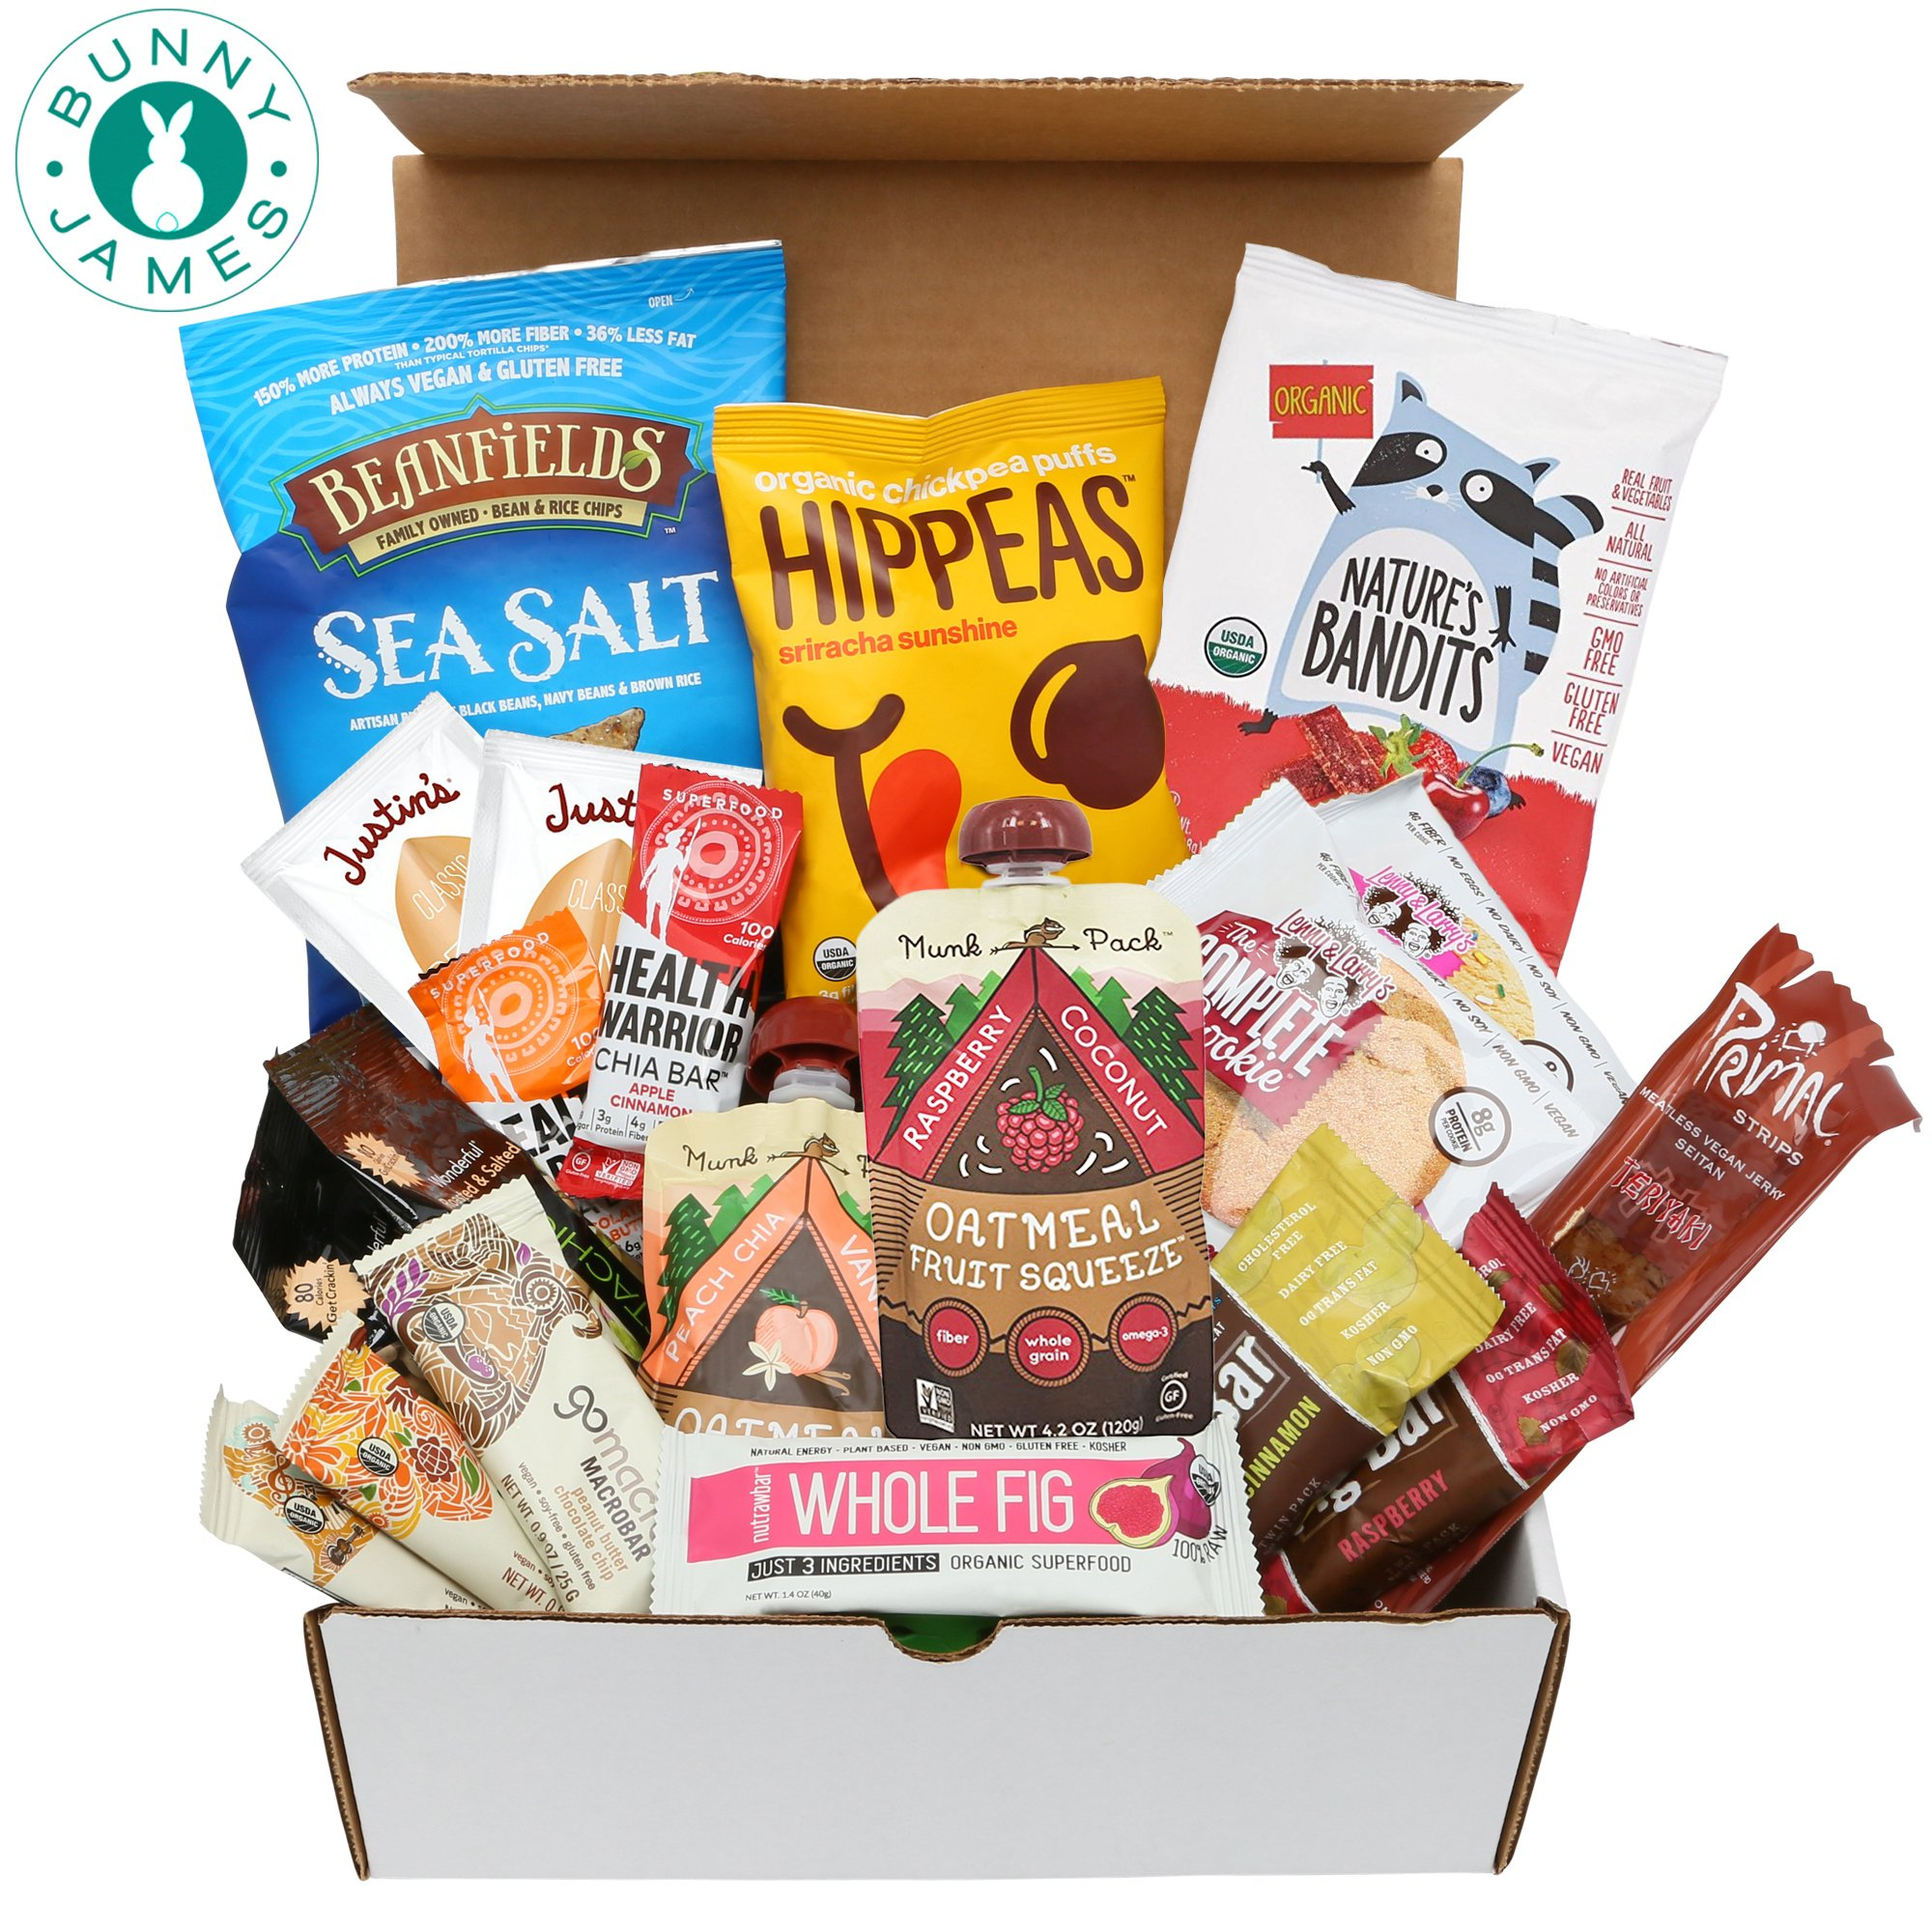 Amazon veganworks assorted vegan snack box candy bars healthy vegan snacks care package natural organic non gmo vegan protein negle Image collections